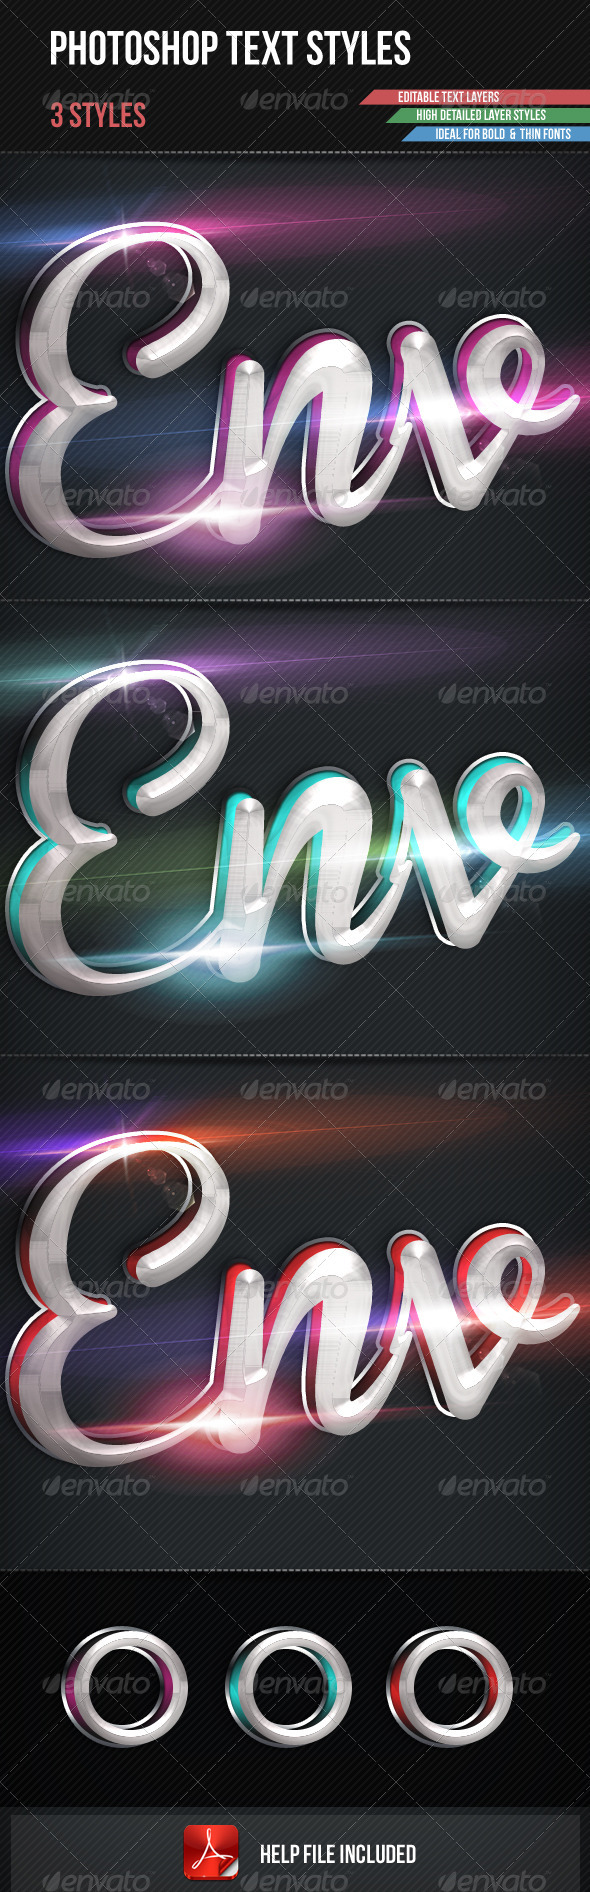 Photoshop Text Styles - Text Effects Styles